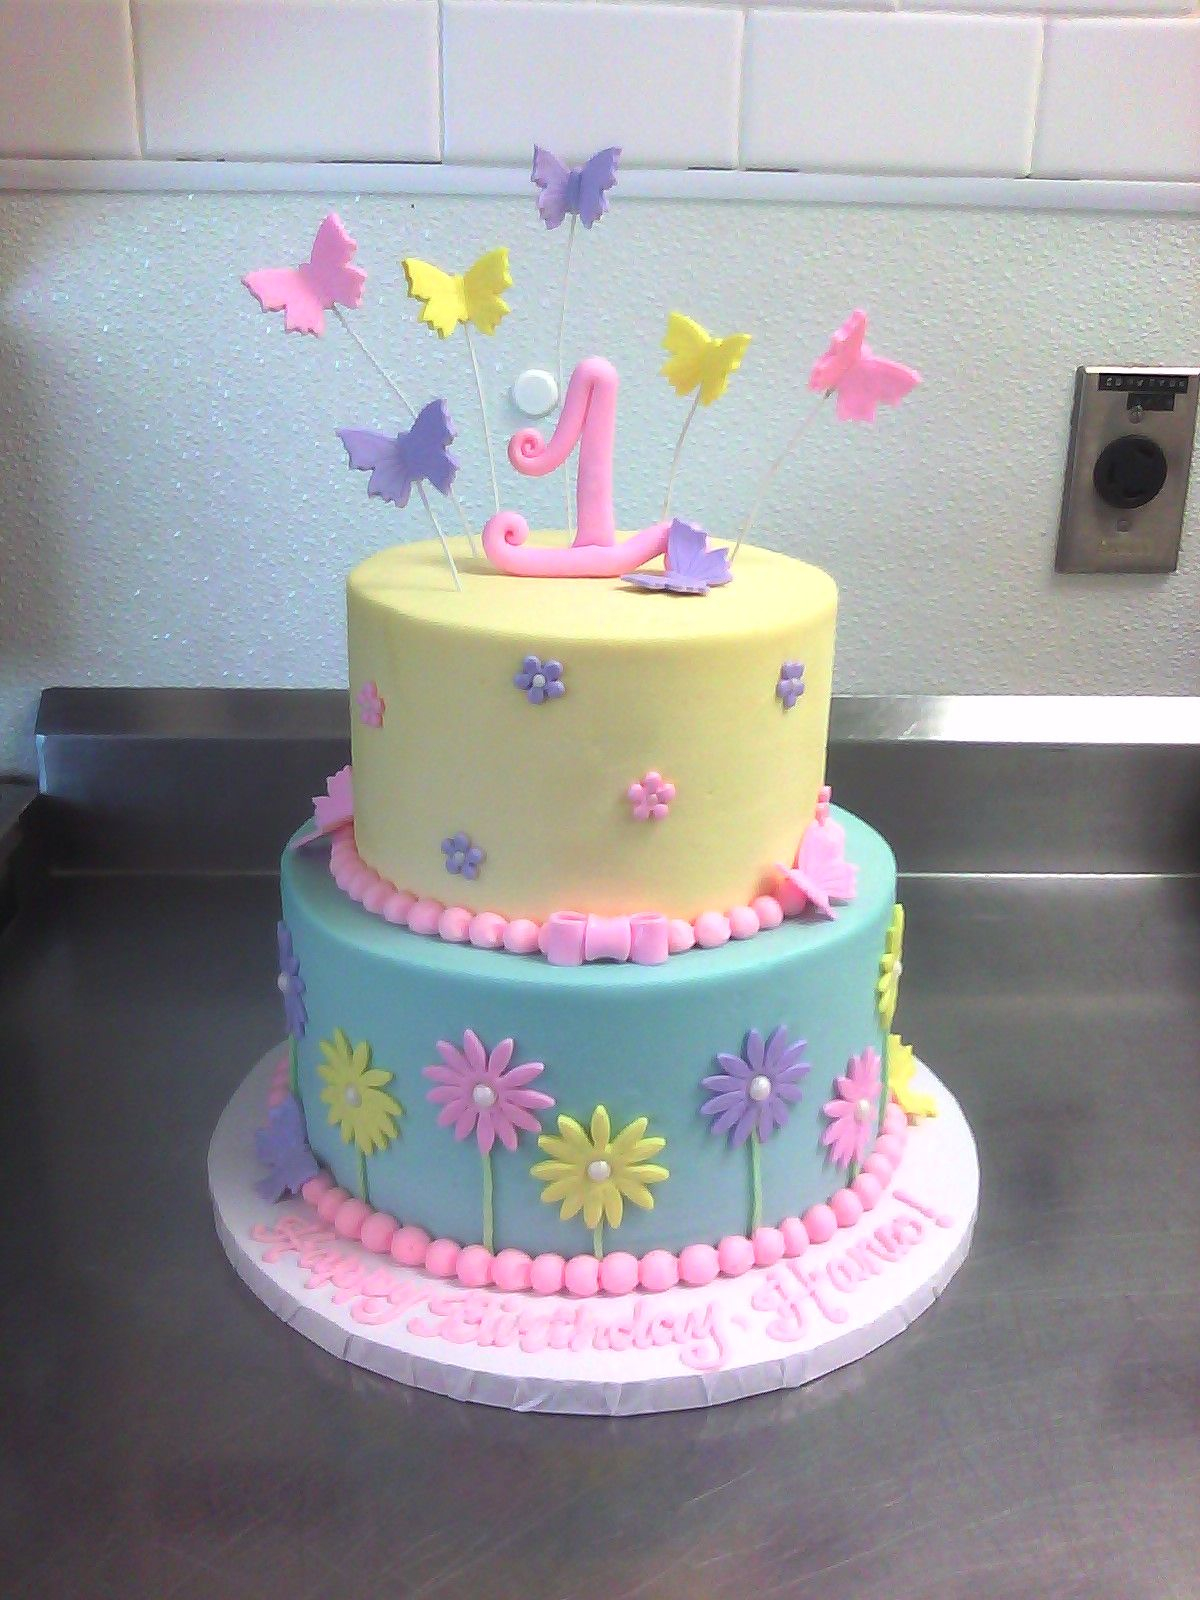 1St Birthday Cake For Girl 1st Birthday Cake With Butterflies Flowers Birthday Cakes Cake